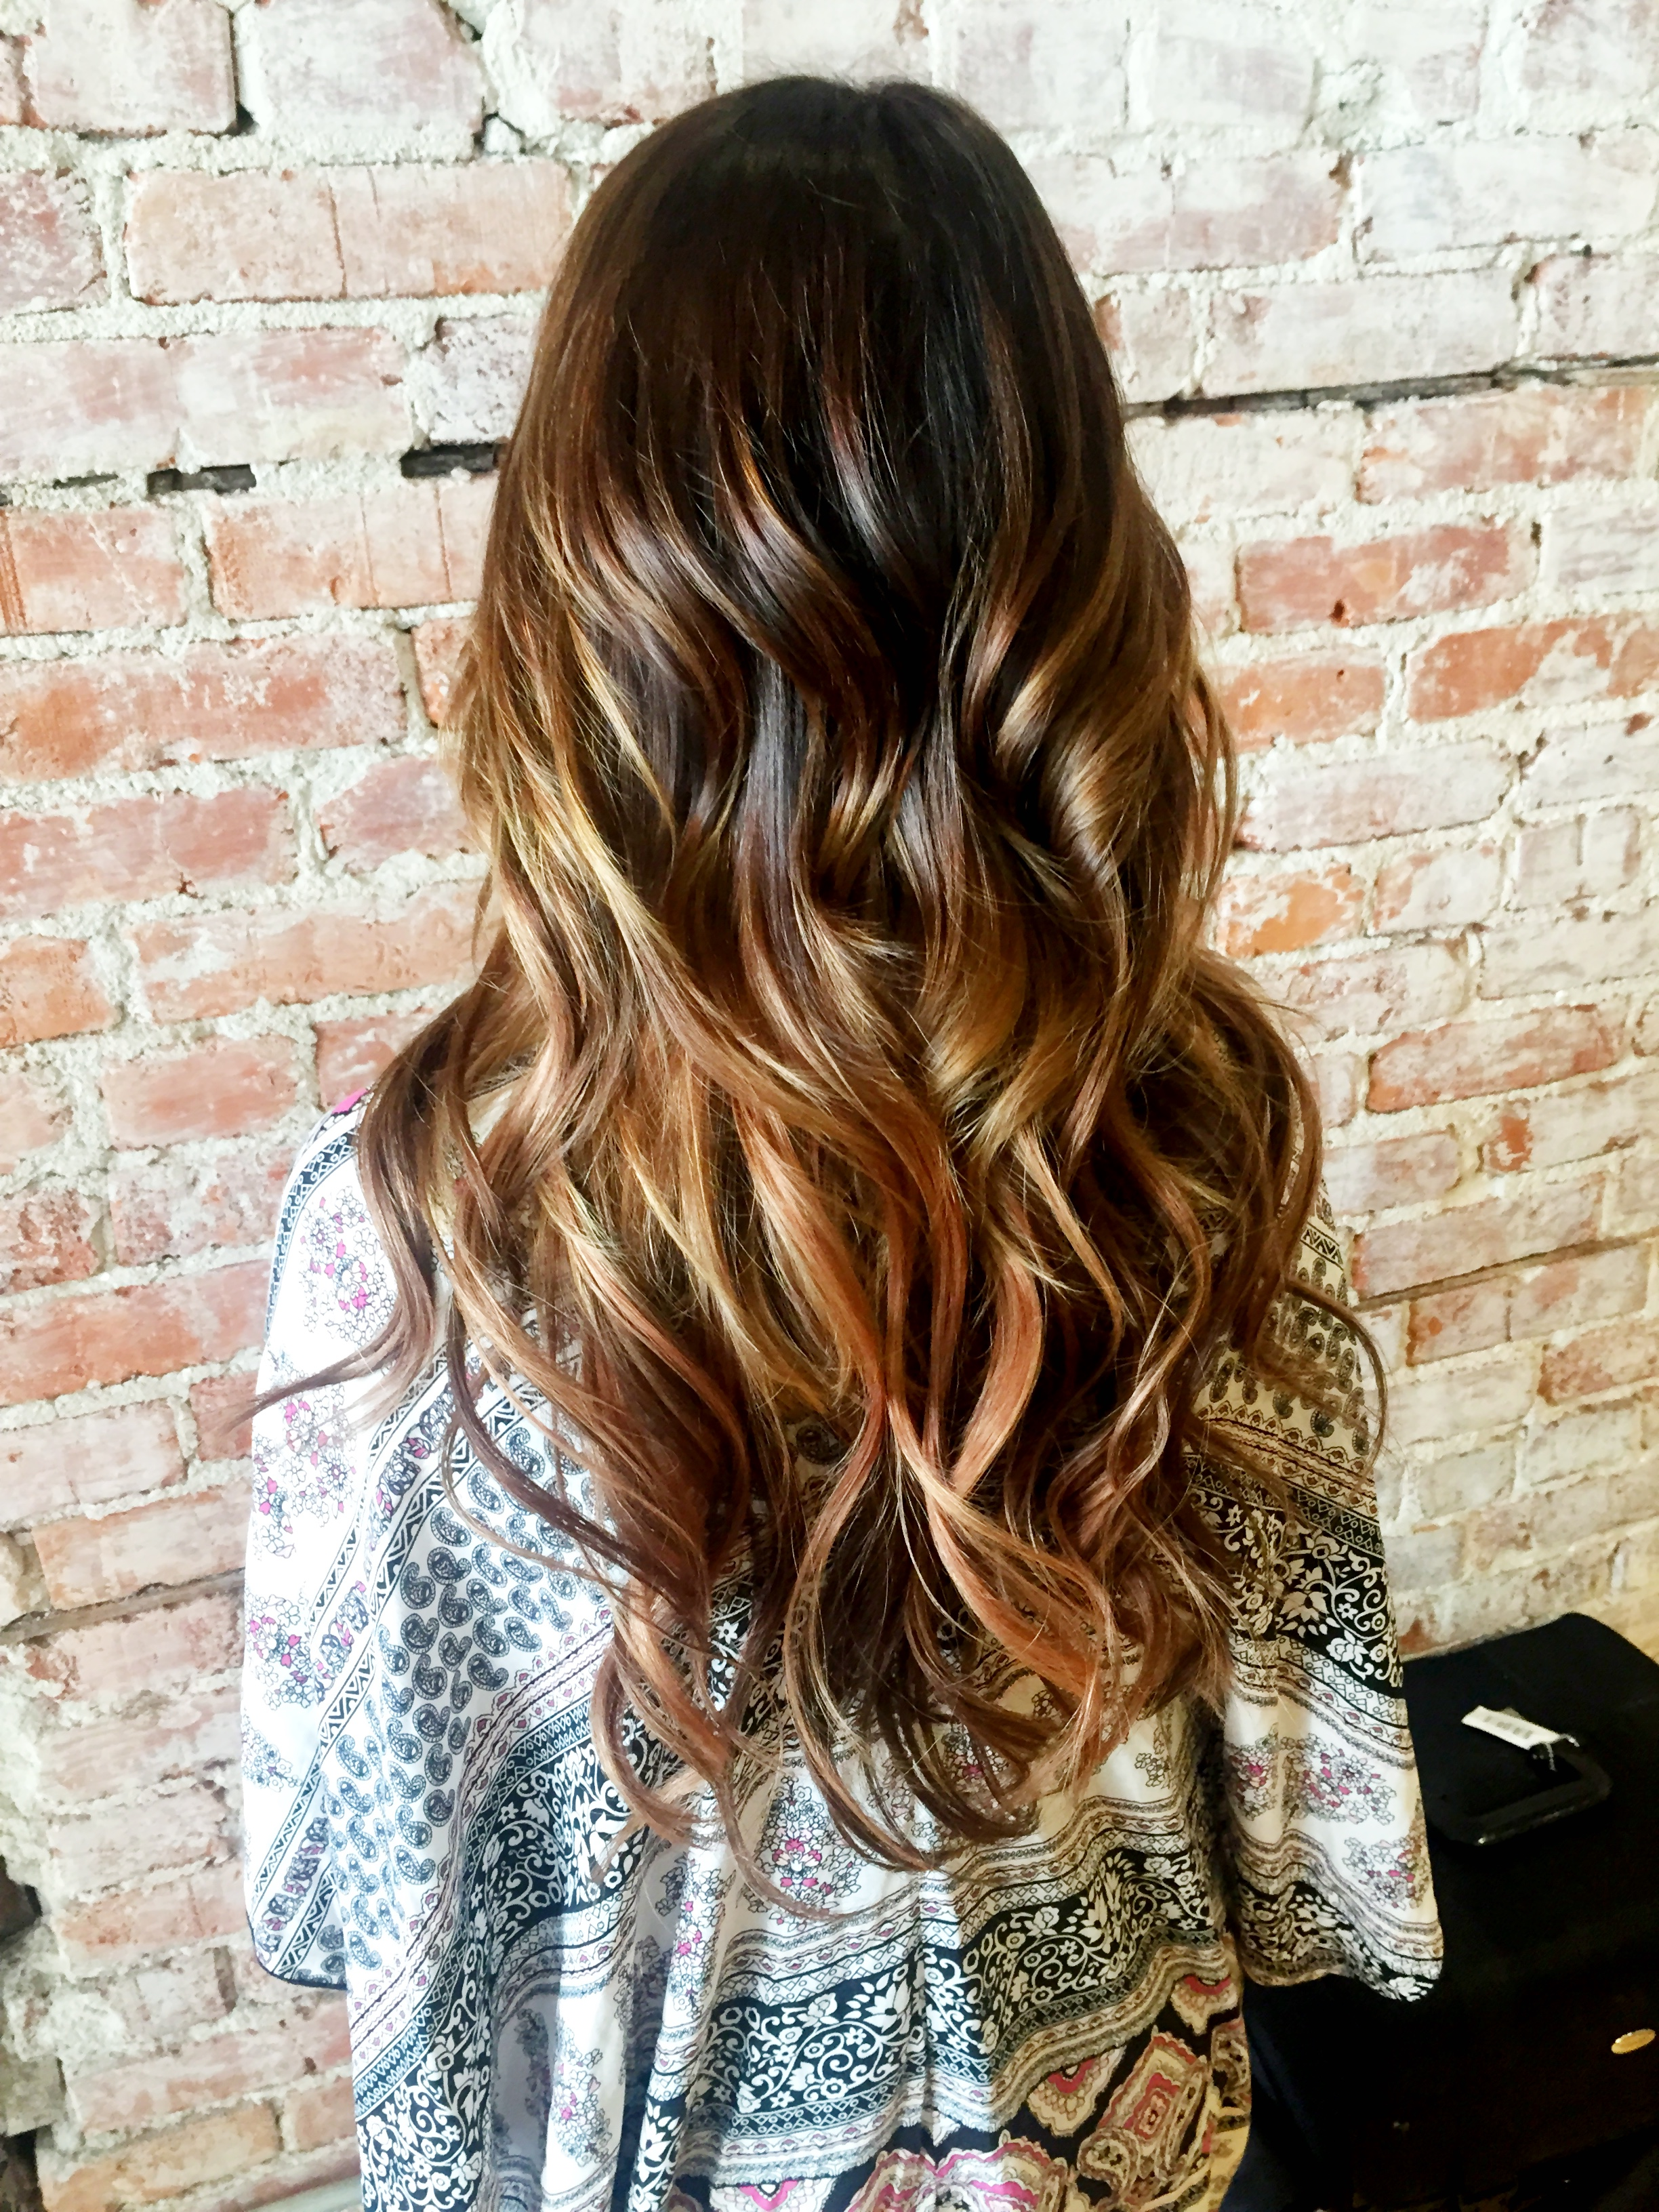 Ombre Look The Difference Between Balayage Ombre Hair Coloring Guide